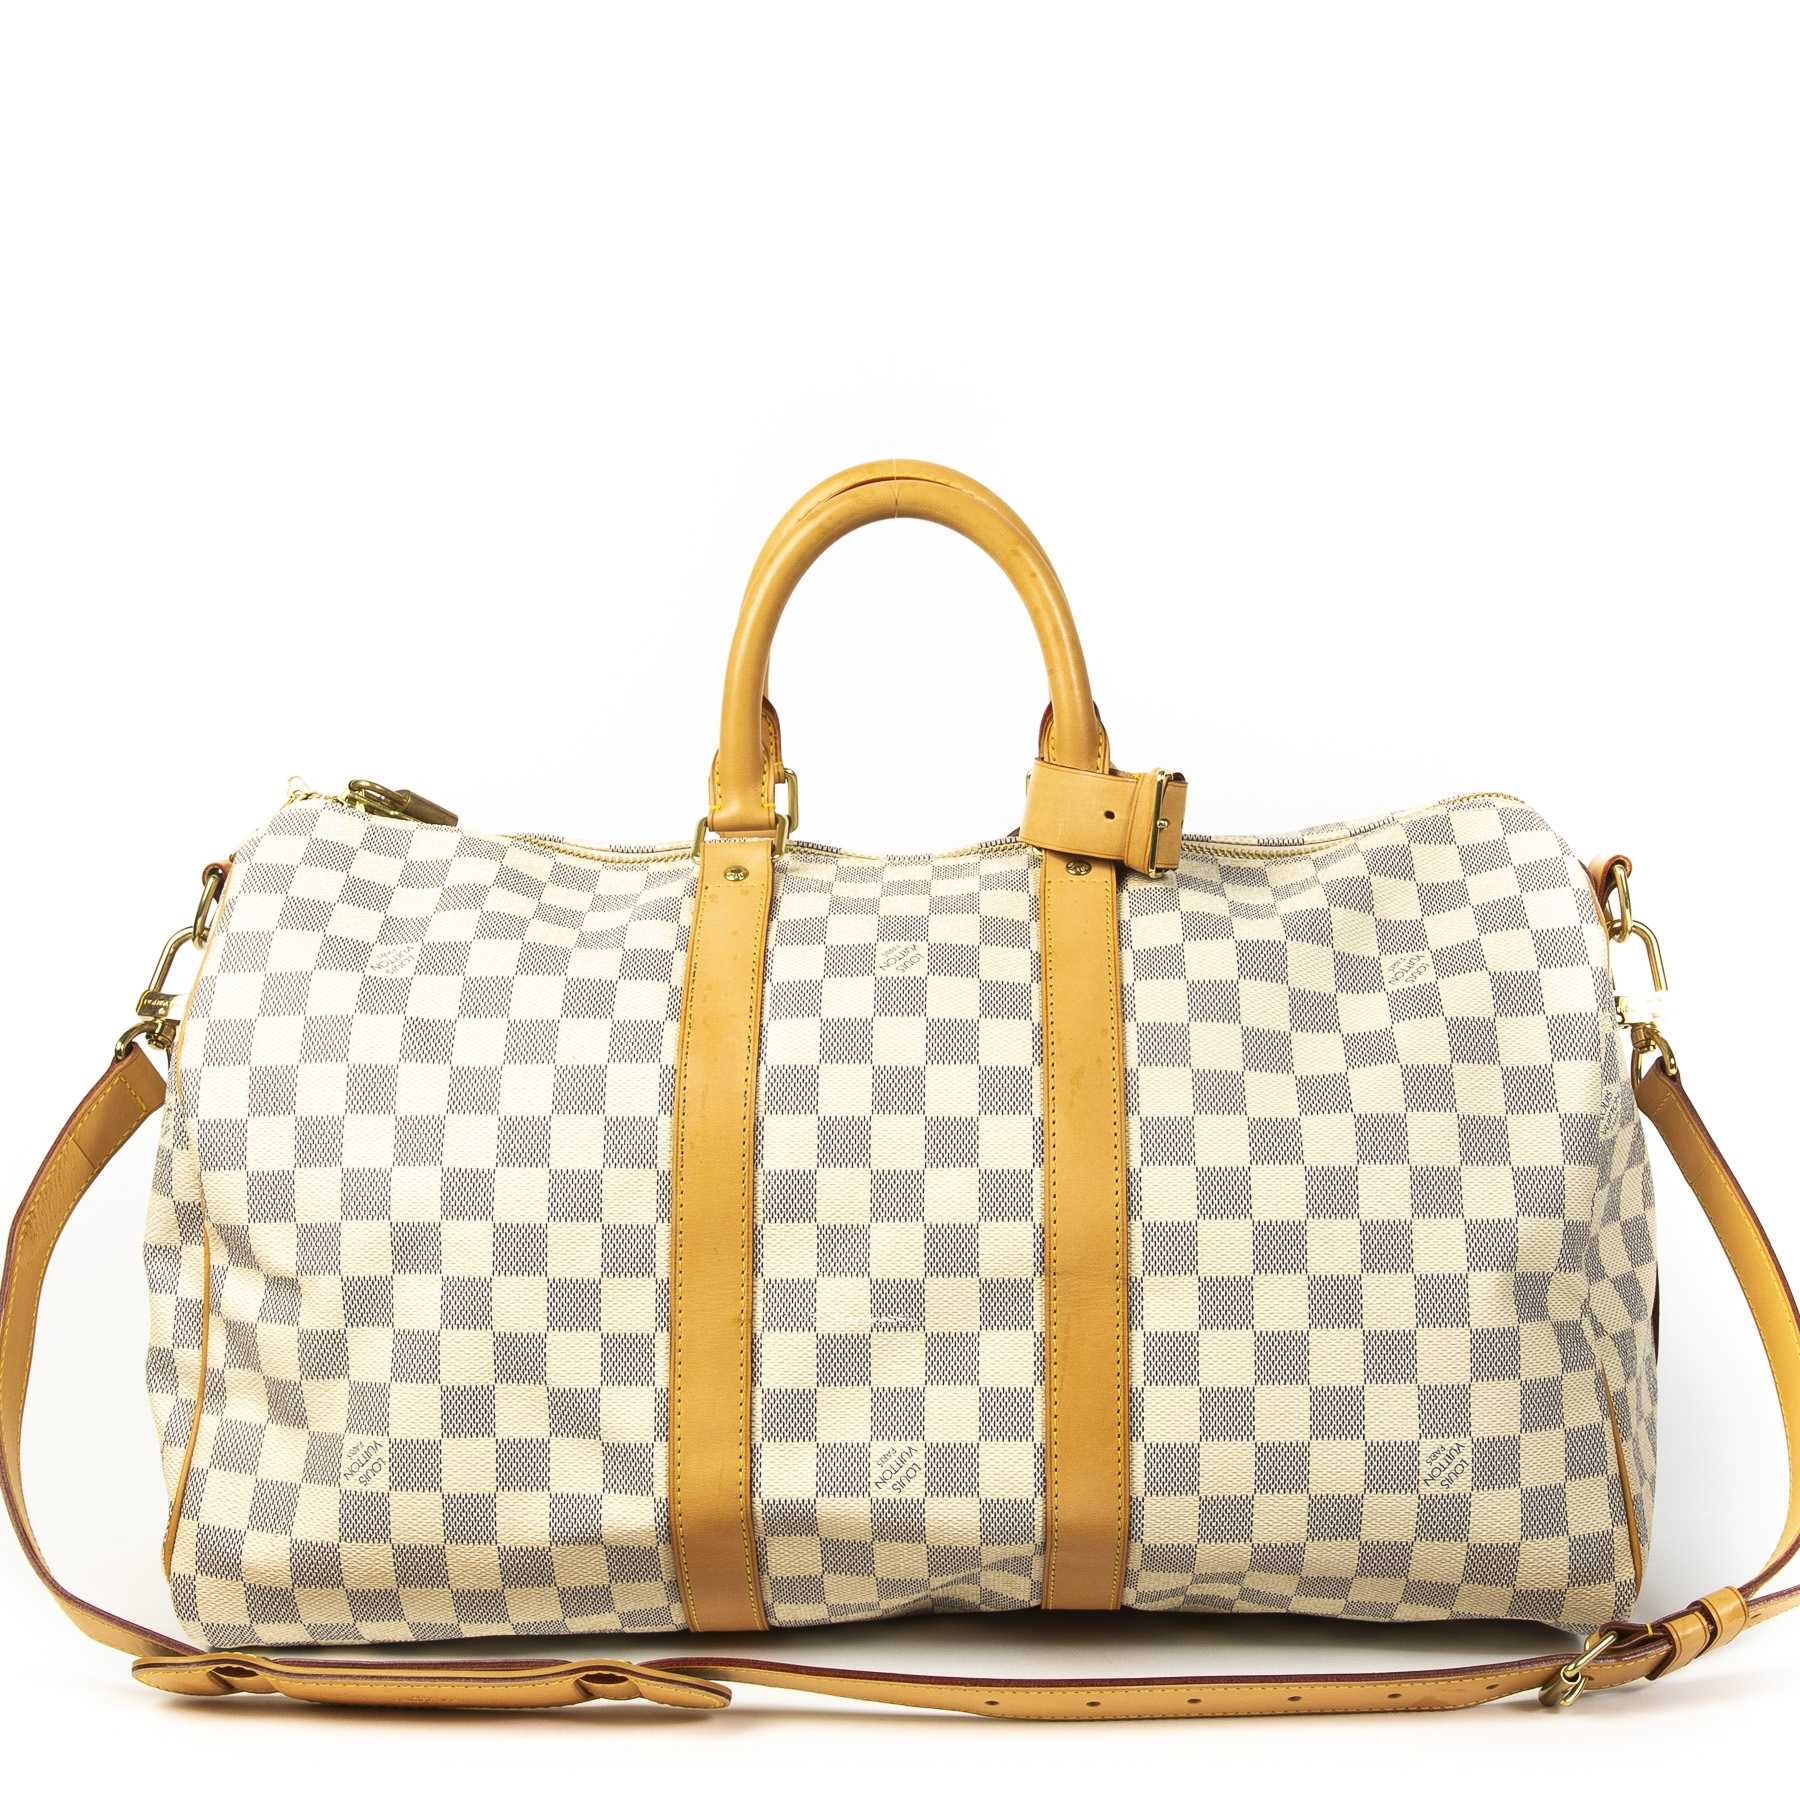 Authentique seconde main vintage Louis Vuitton Keepall Bandoulière Damier Azur 45